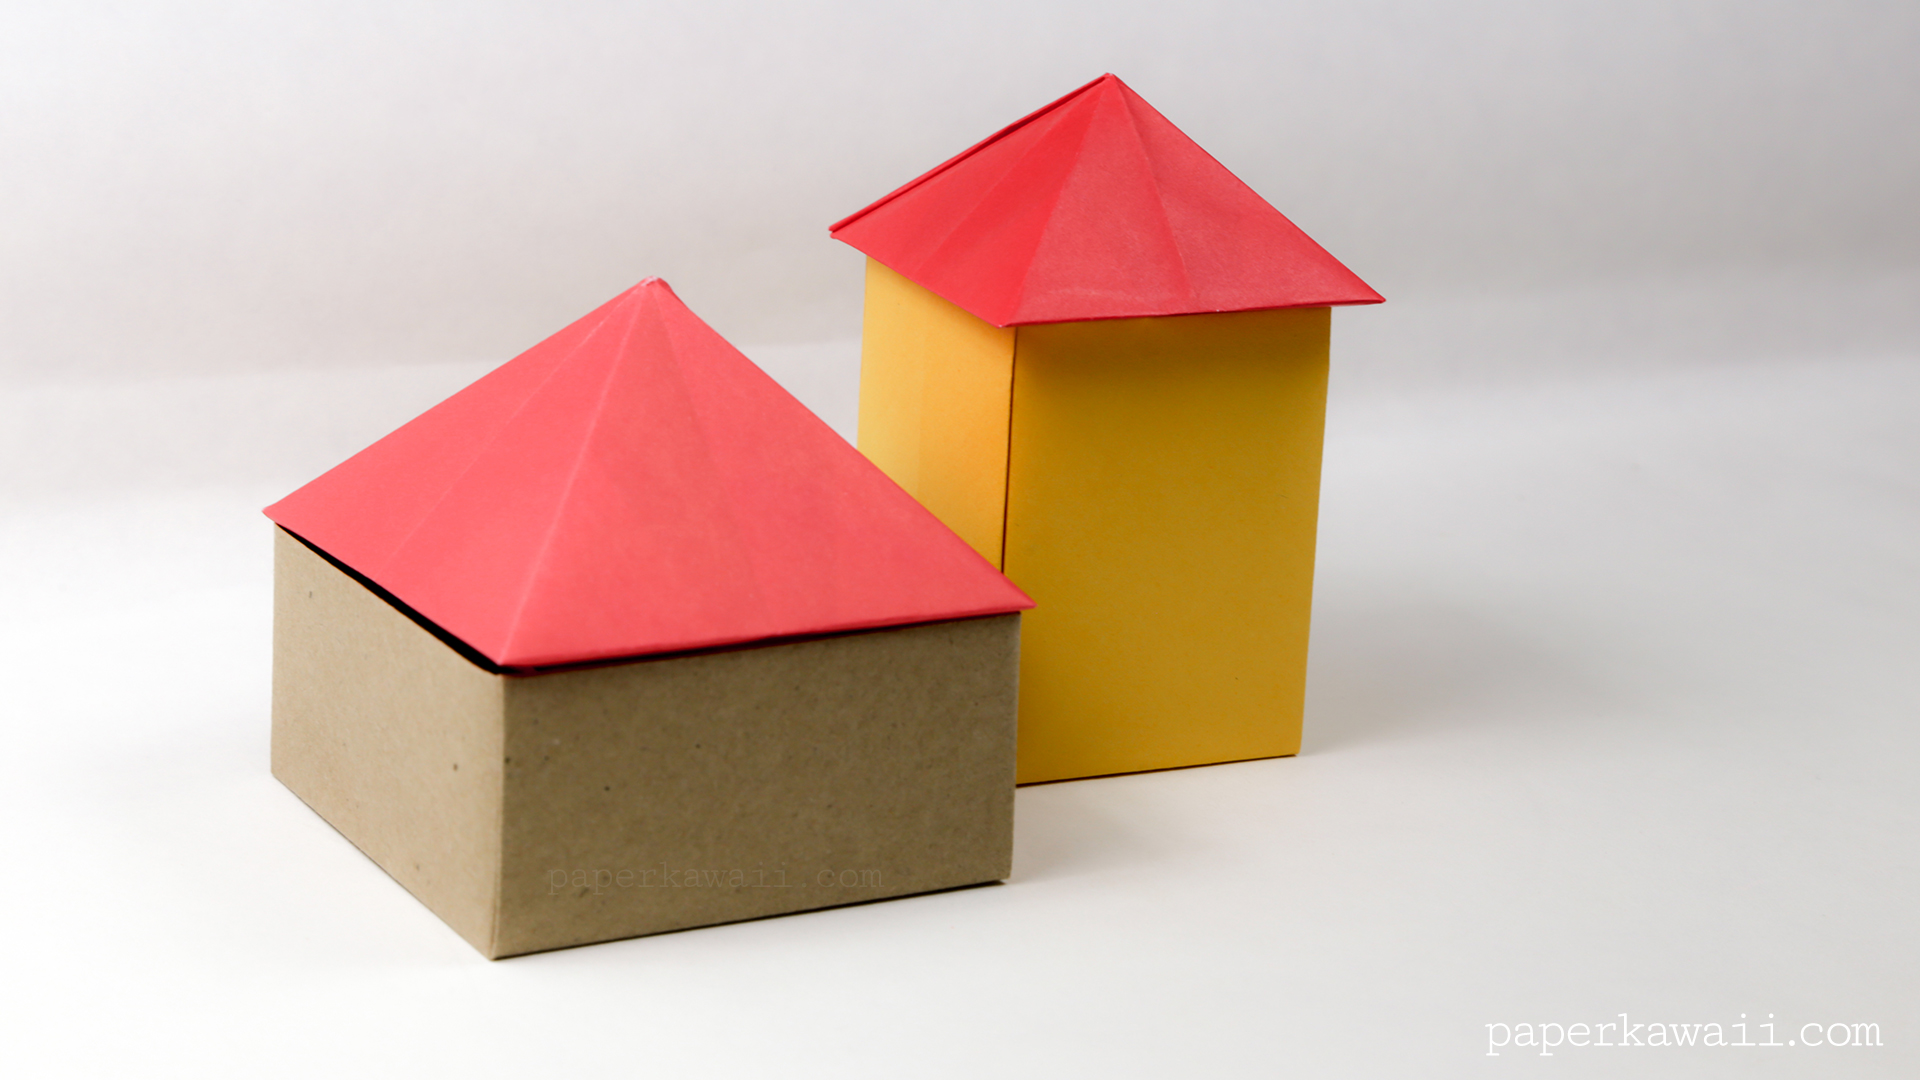 Origami Square Pyramid - House Lid - Paper Kawaii - photo#9